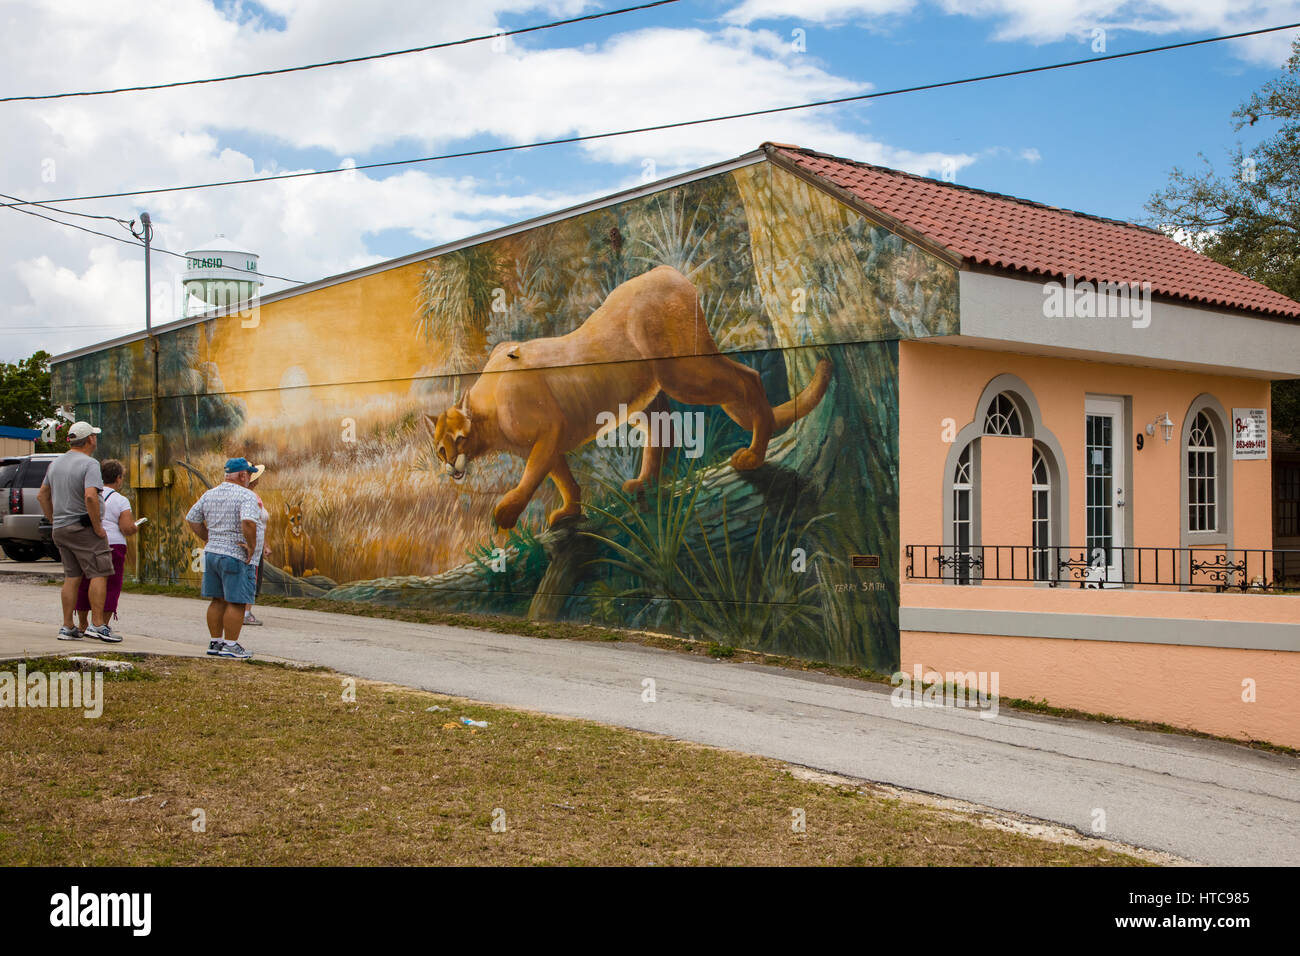 Exterior Murals On Building Facade High Resolution Stock Photography And Images Alamy